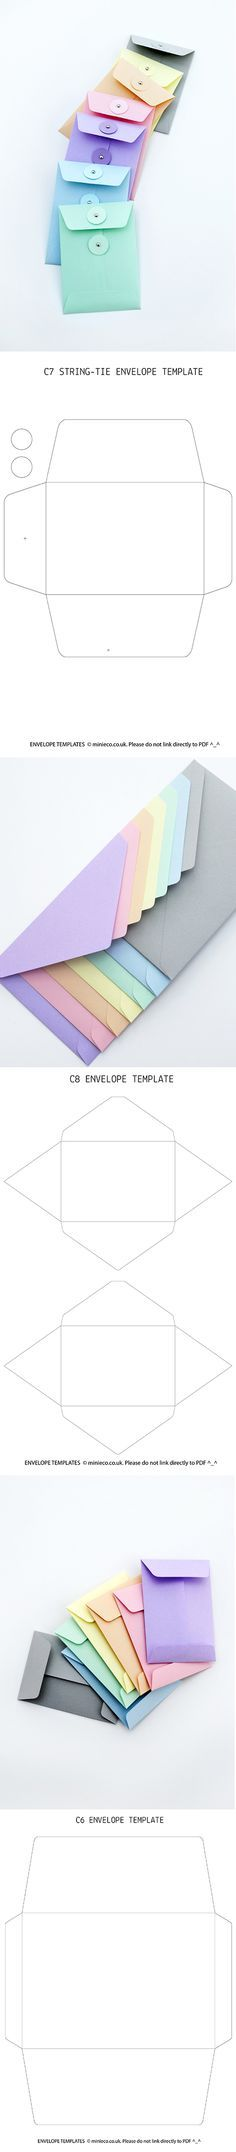 Create Cool Envelopes With These Free Templates | Envelopes, Cards